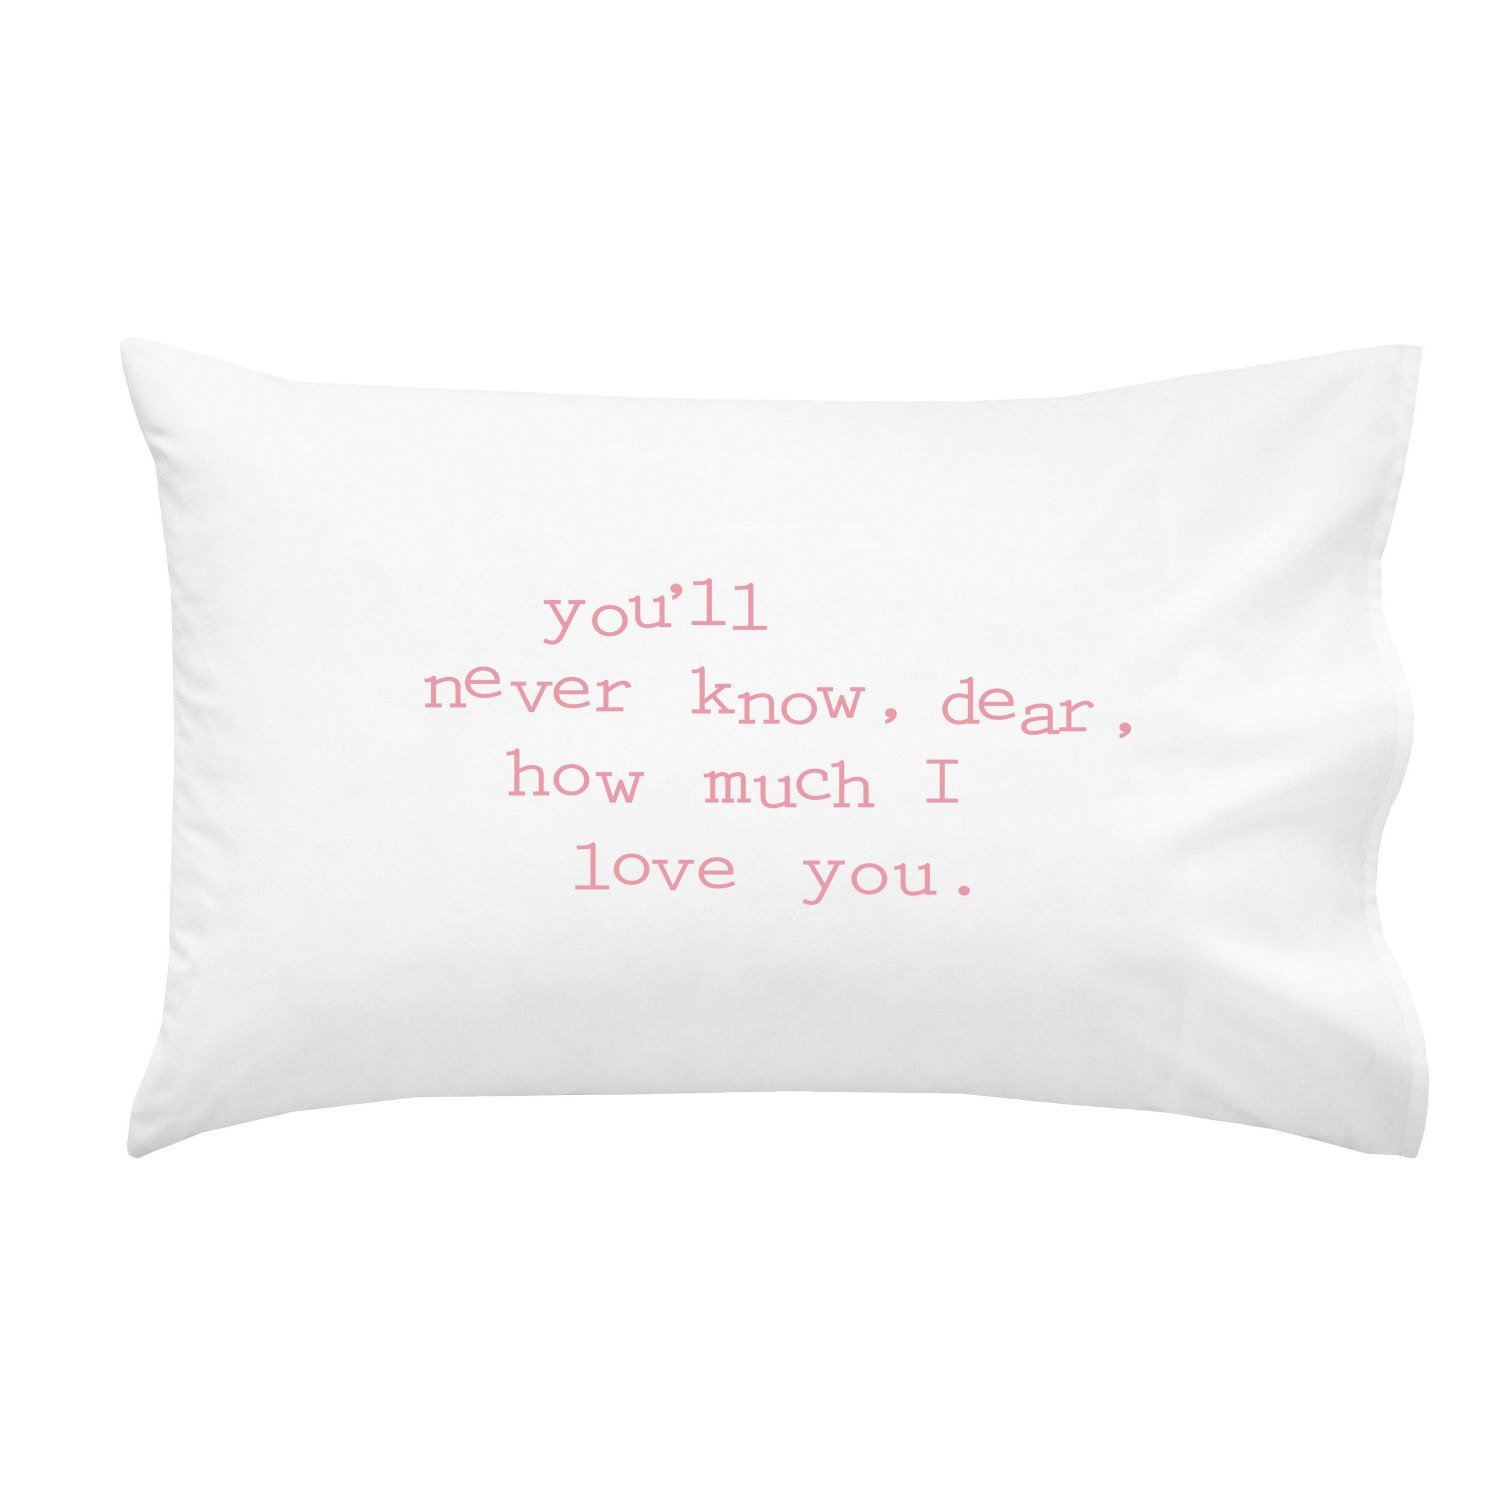 Oh, Susannah You'll Never Know, Dear, How Much I Love You. Pink 20x30 inch You are My Sunshine Pillowcase Kids Room Decor